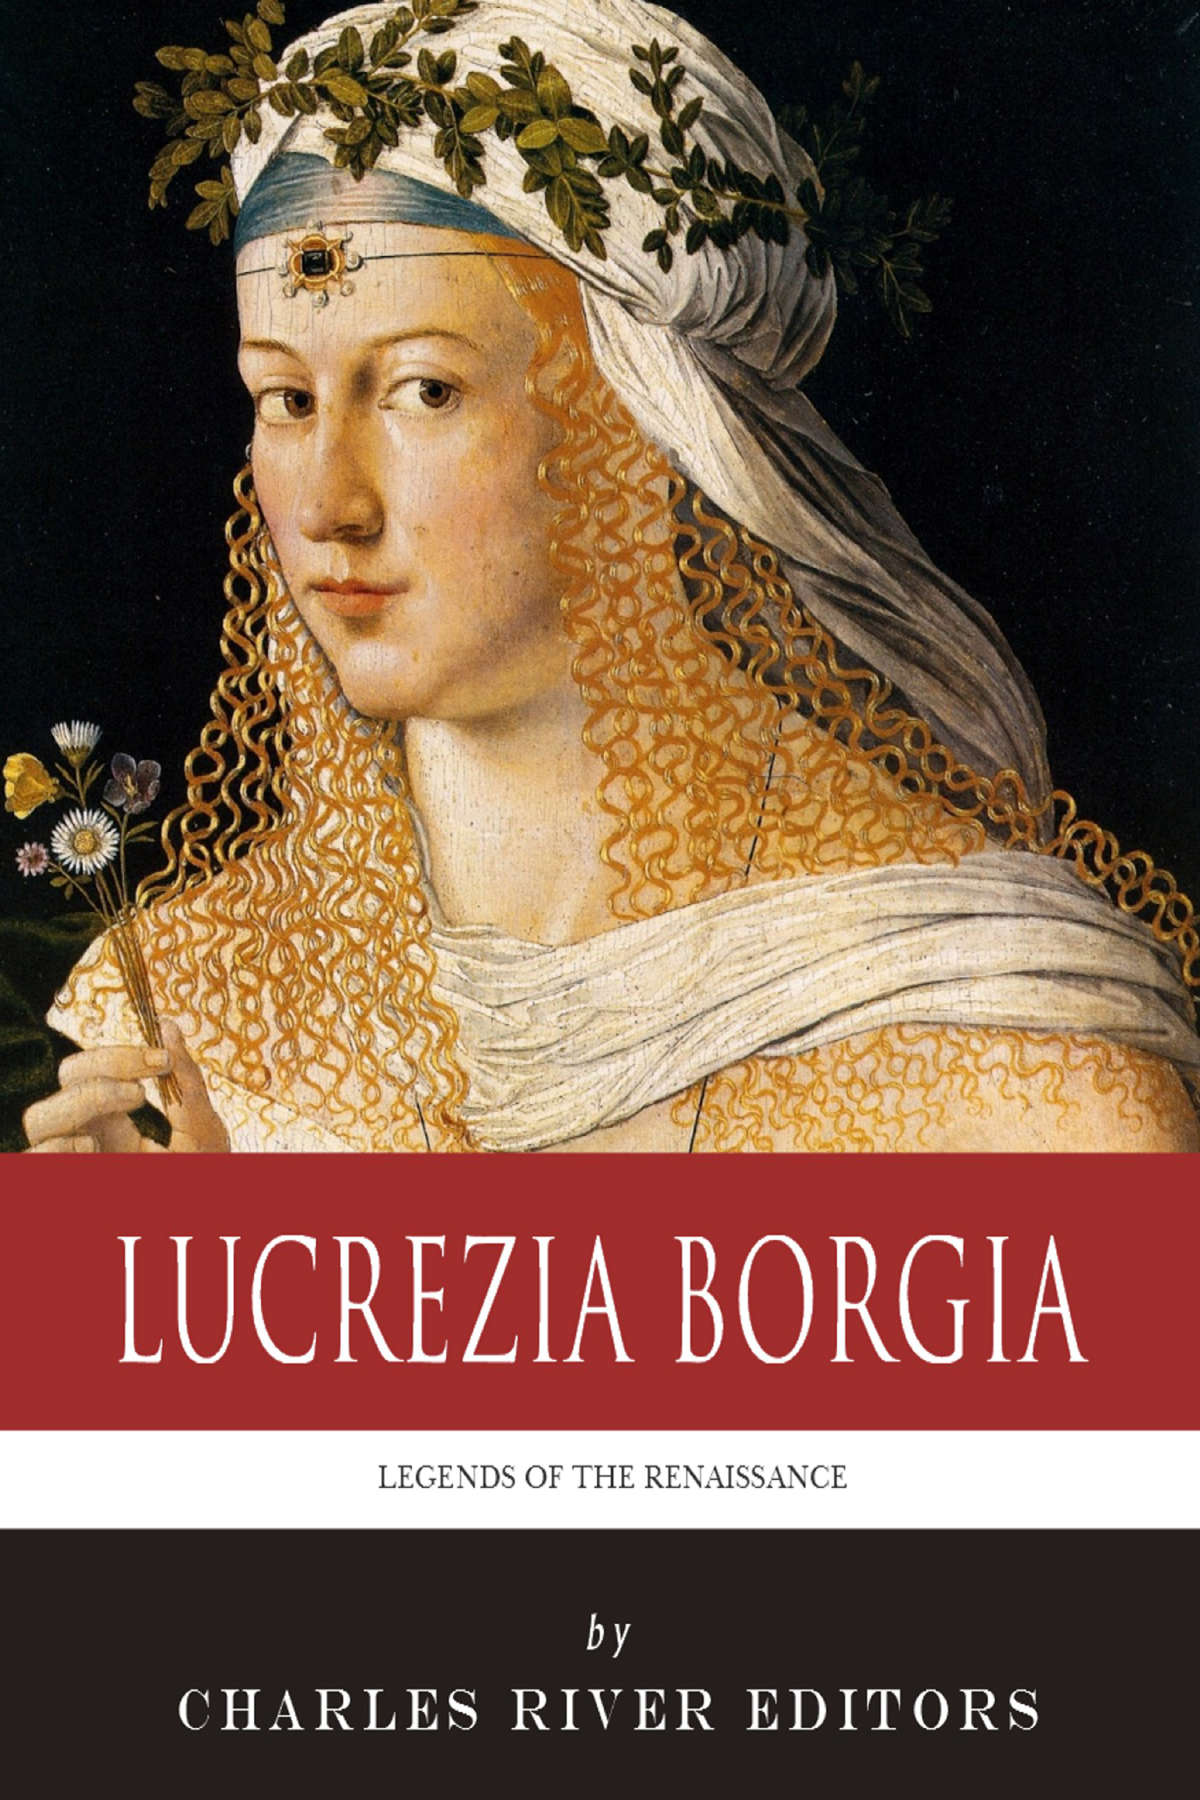 Legends of the Renaissance: The Life and Legacy of Lucrezia Borgia